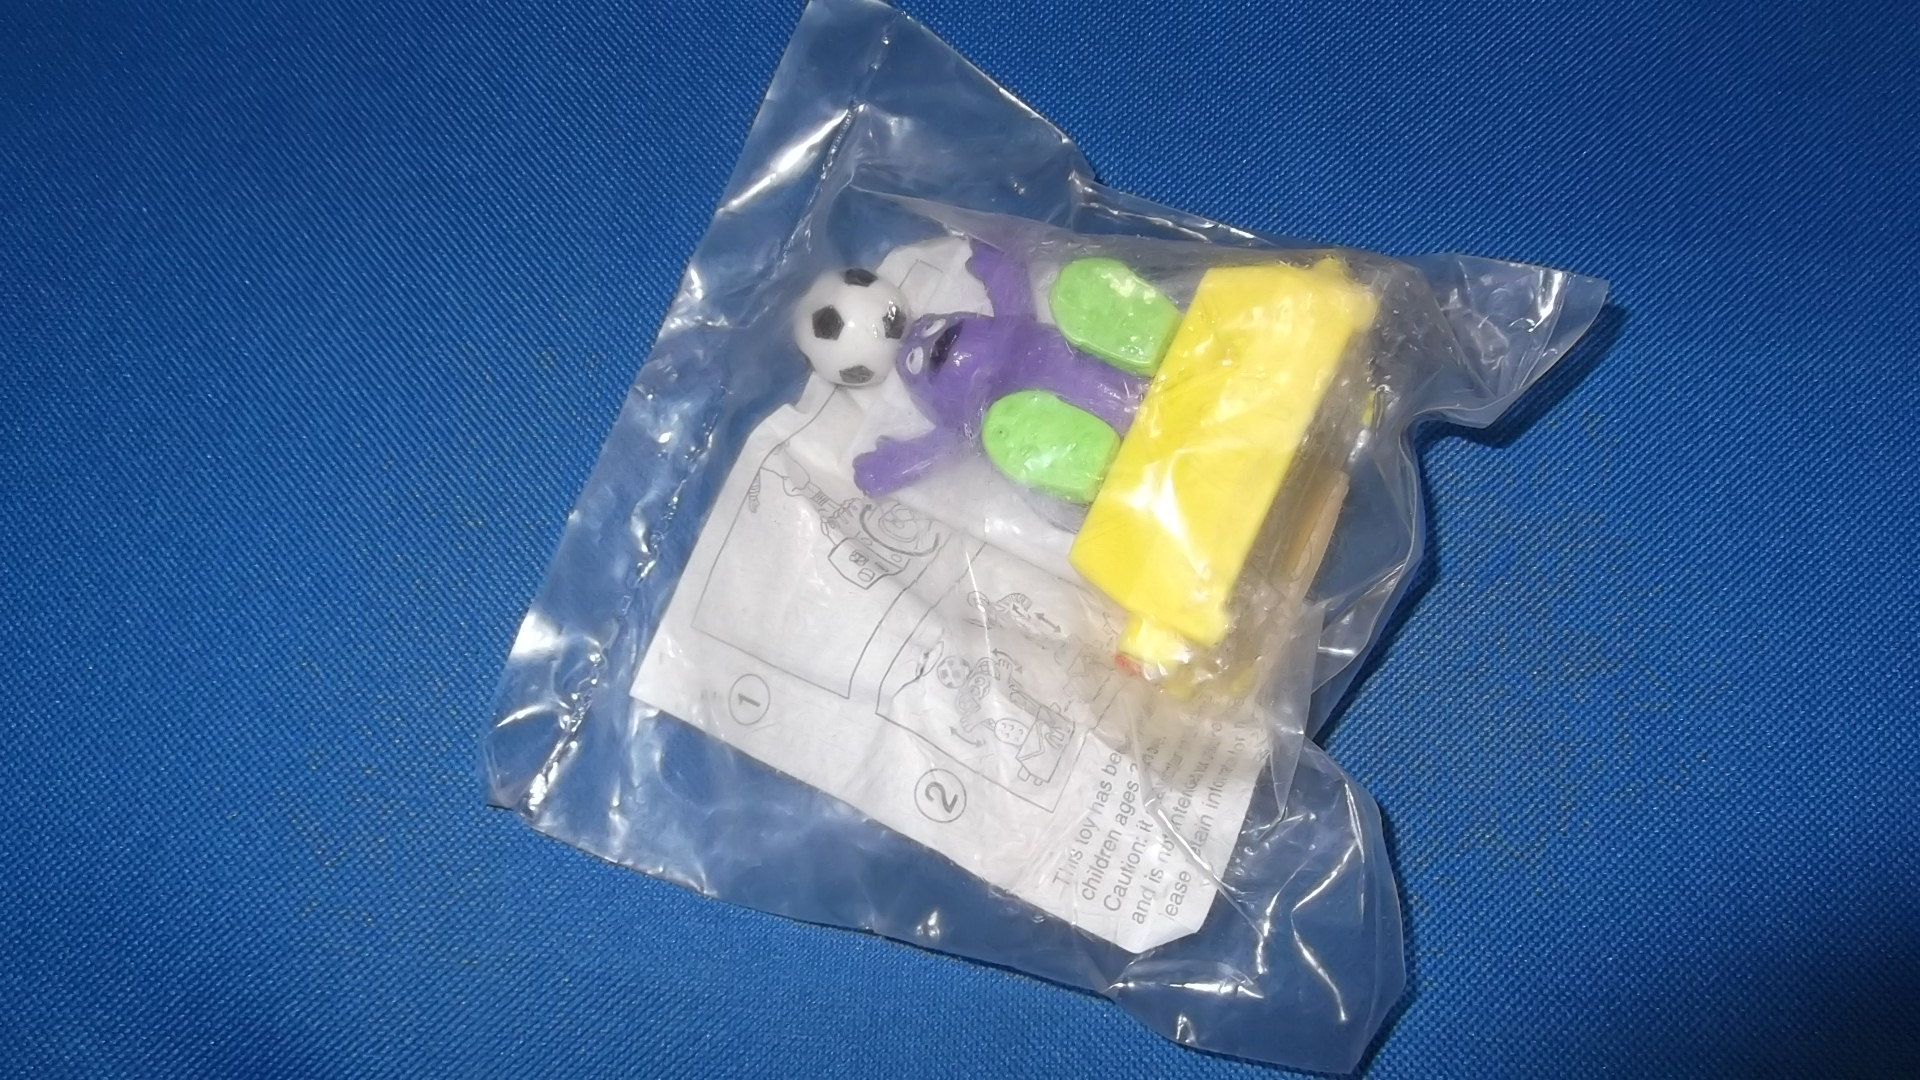 McDonalds Twisting Sports Grimace Toy From 1993 New